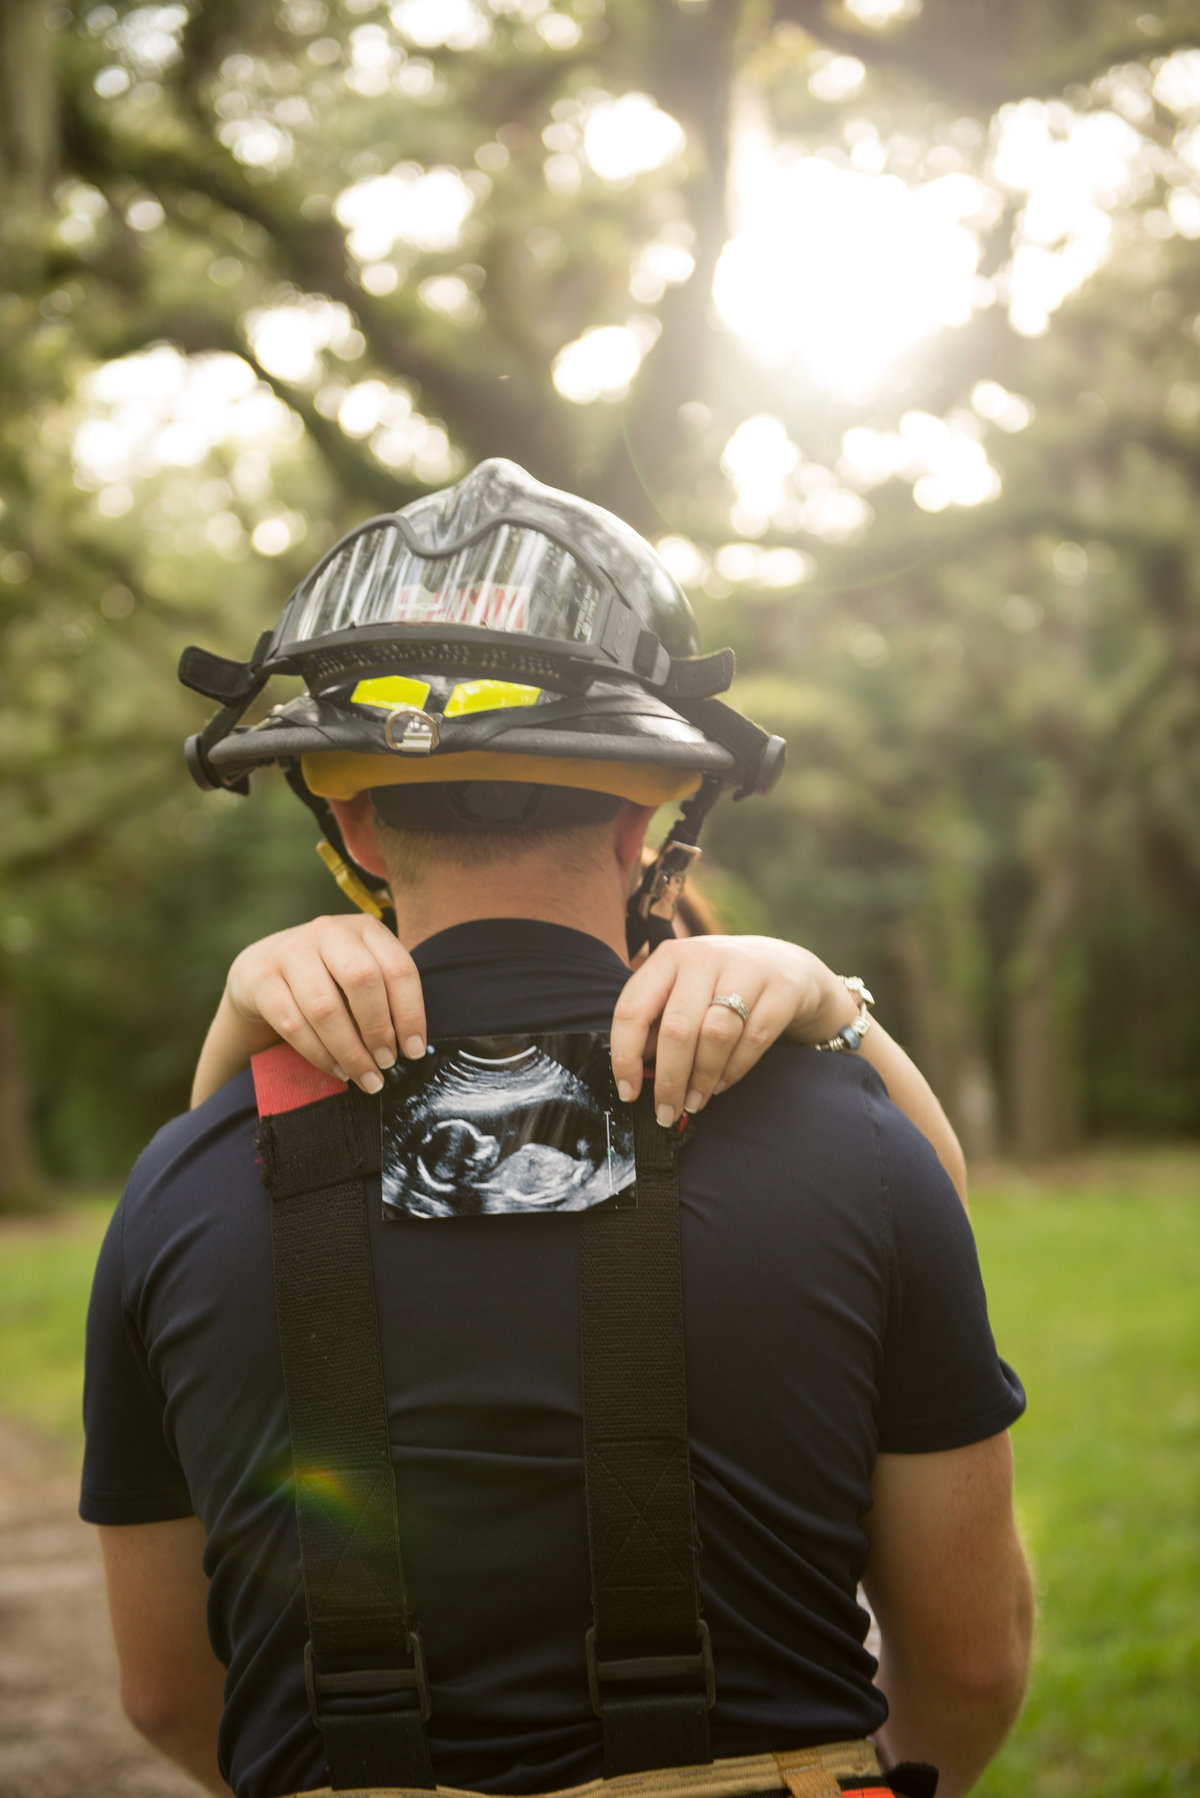 City of Miami Firefighter Maternity Shoot